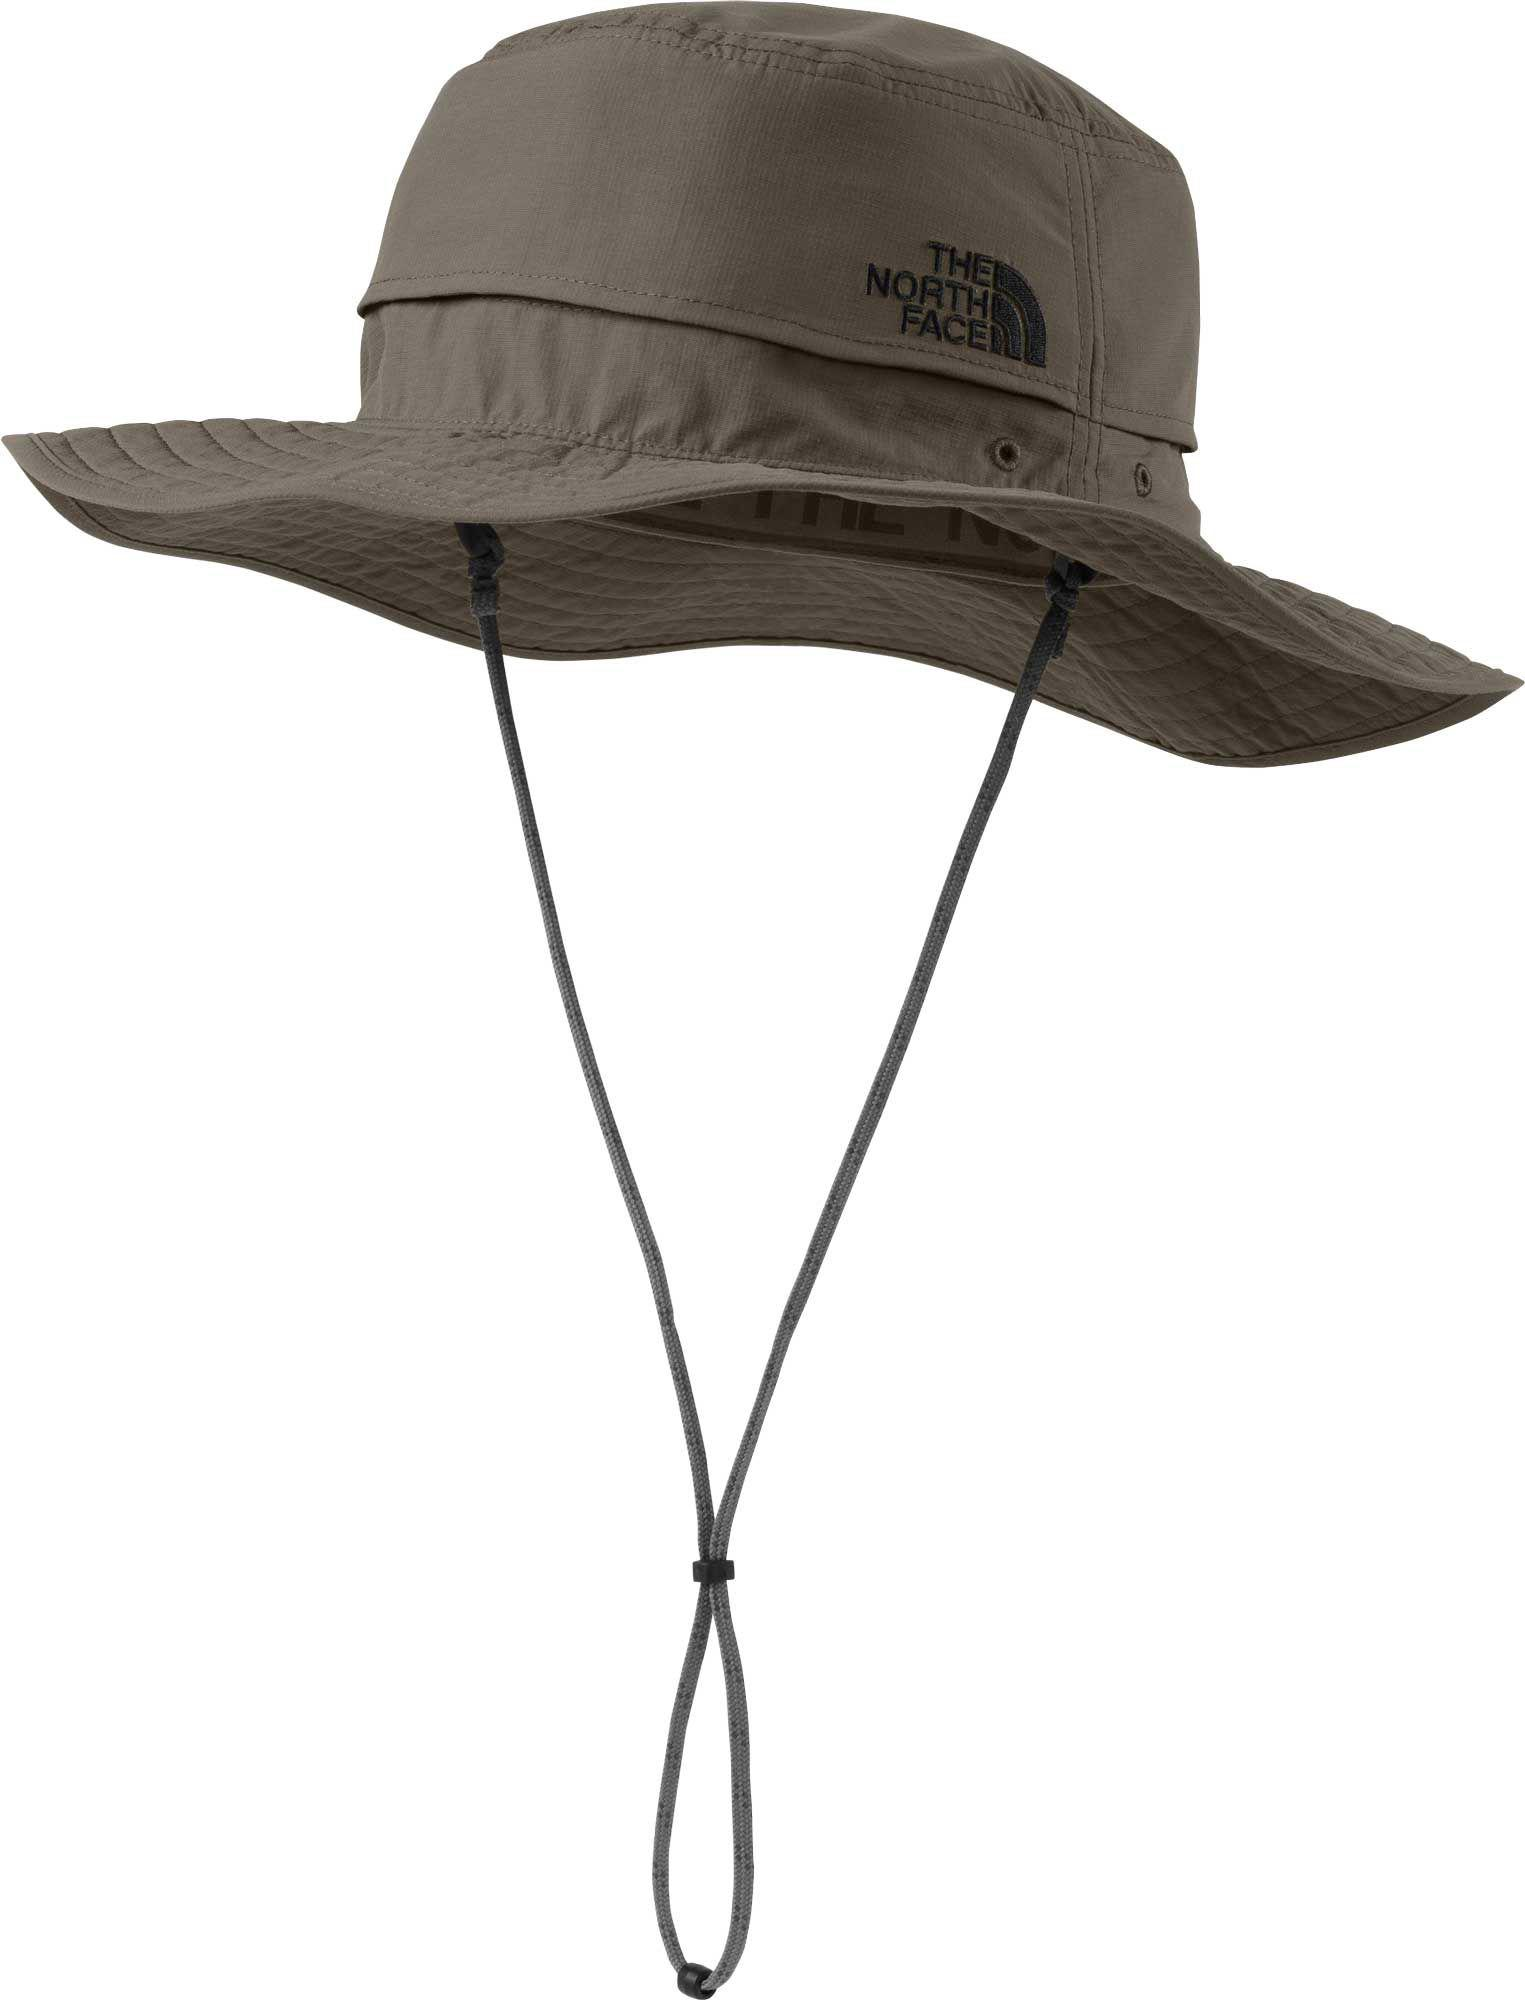 e0f3b27779916f The North Face Horizon Breeze Brimmer Hat in Brown for Men - Lyst